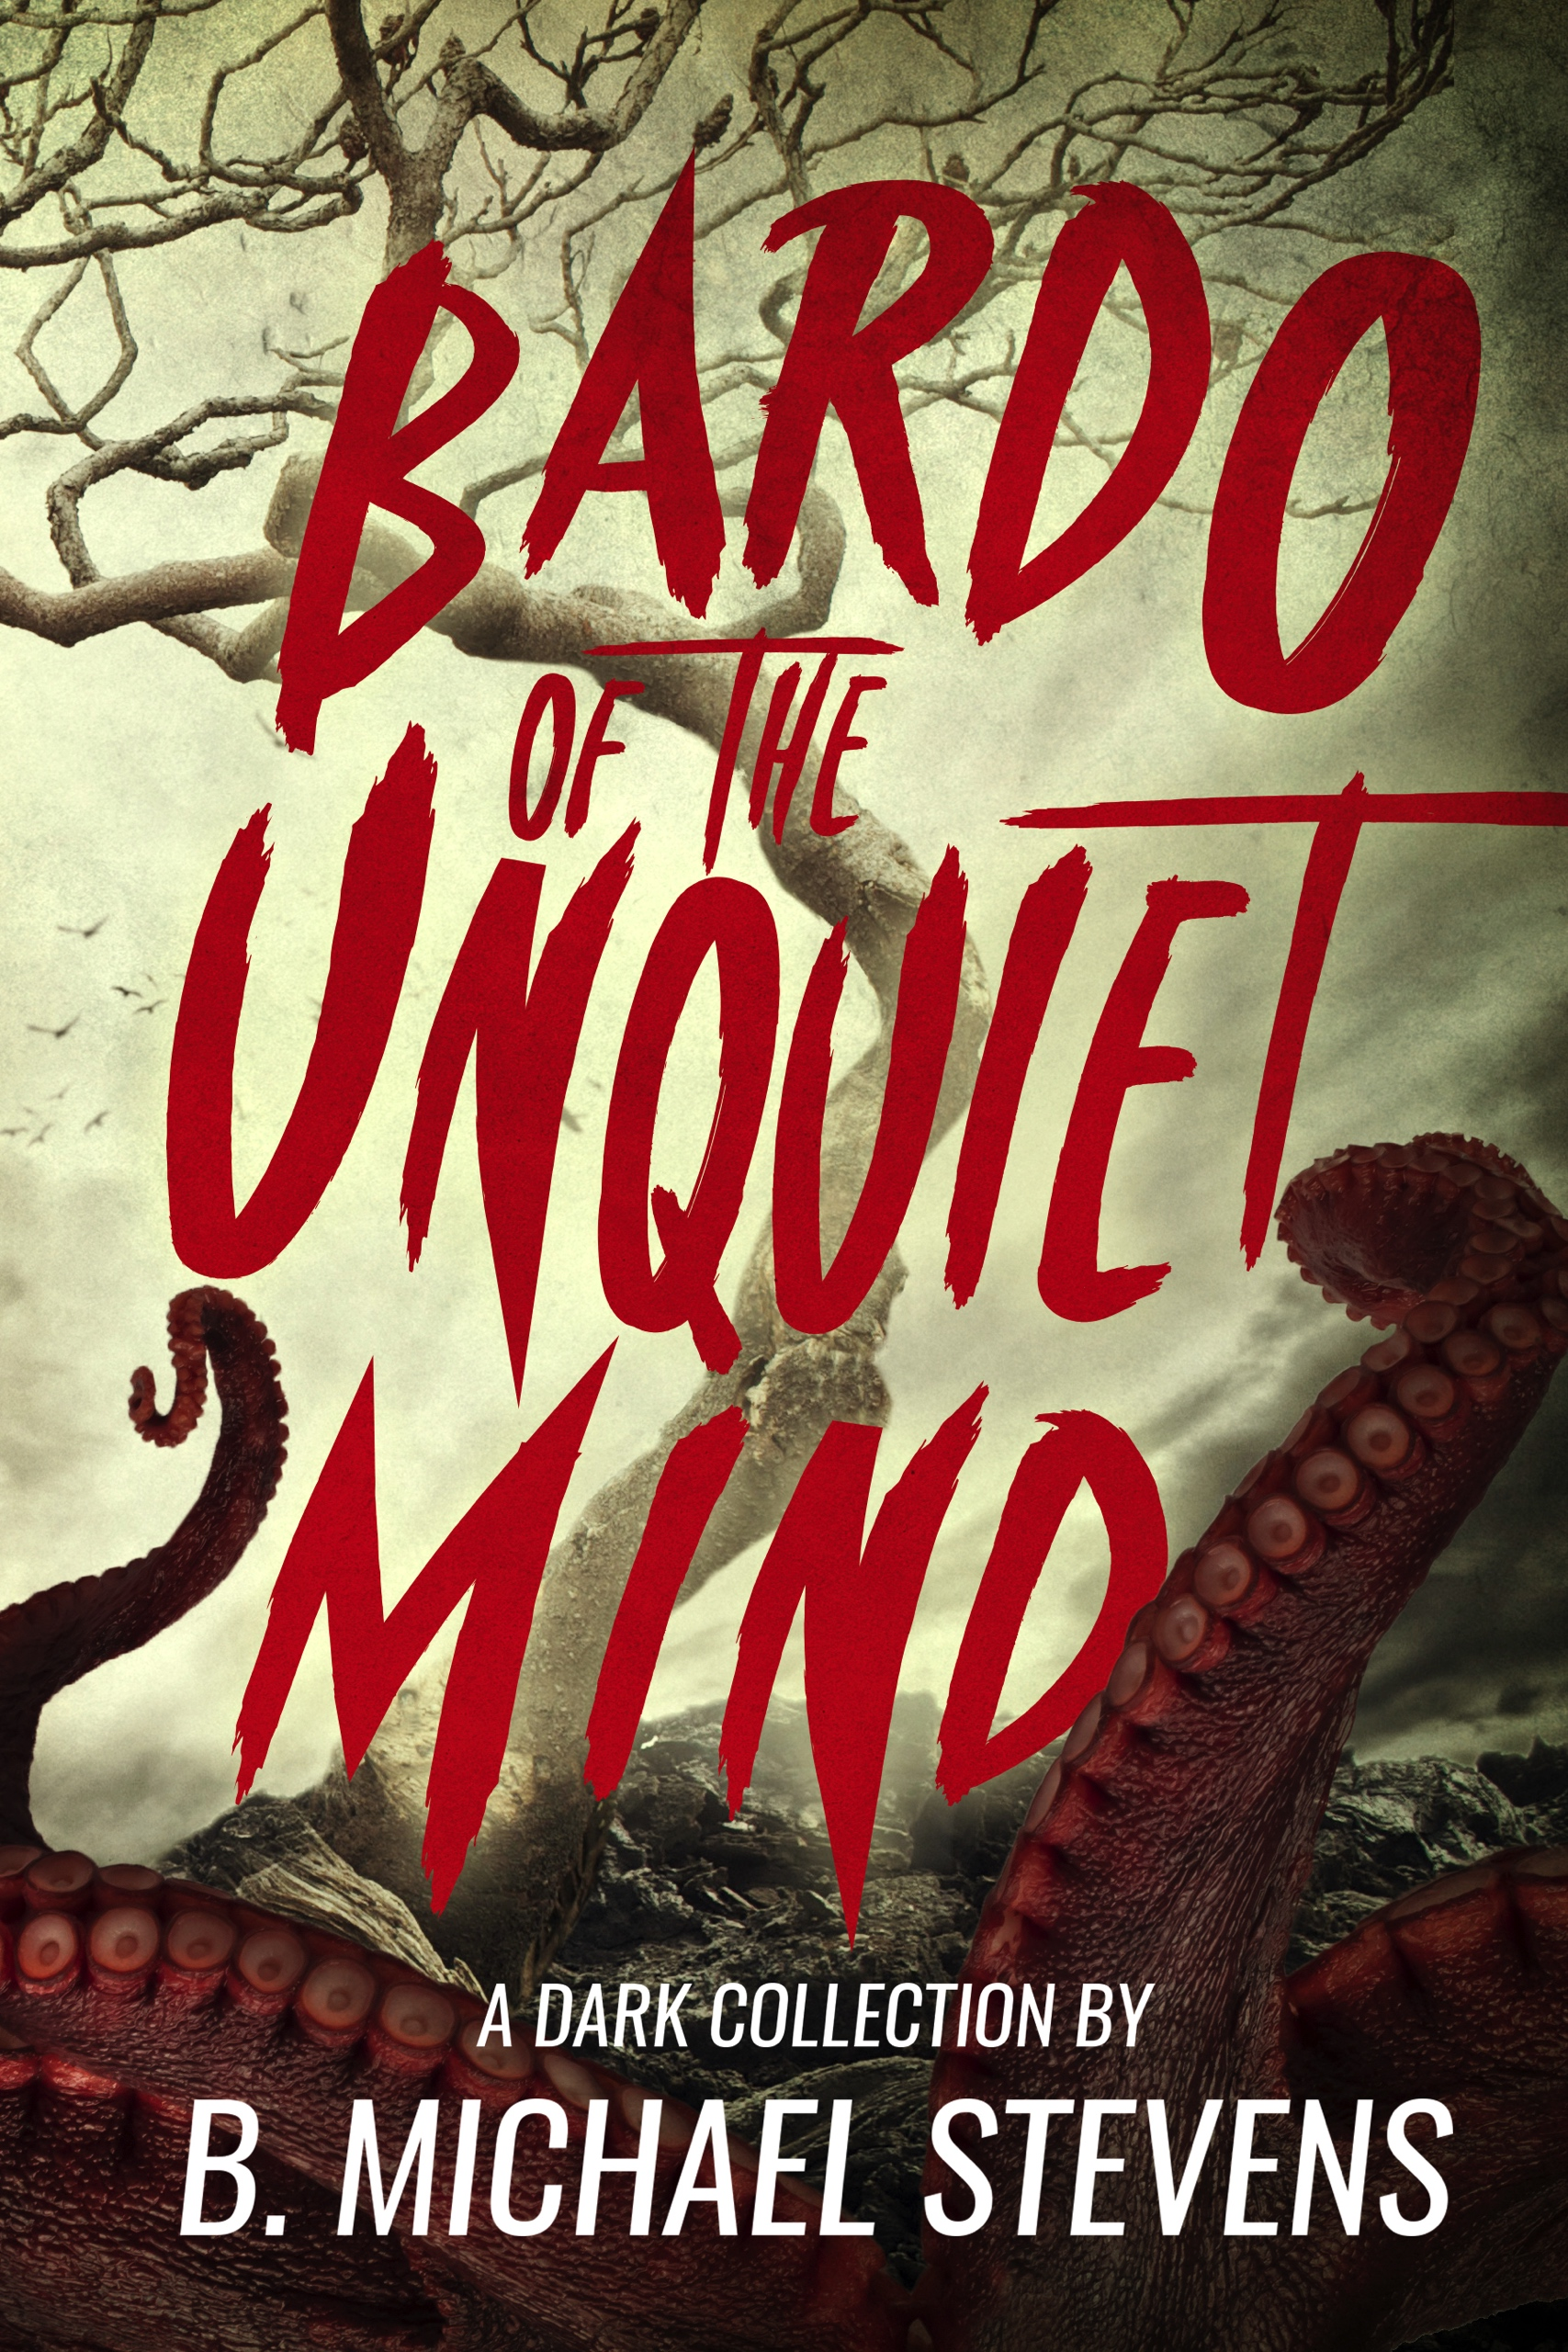 The-Bardo-of-the-Unquiet-Mind-Kindle